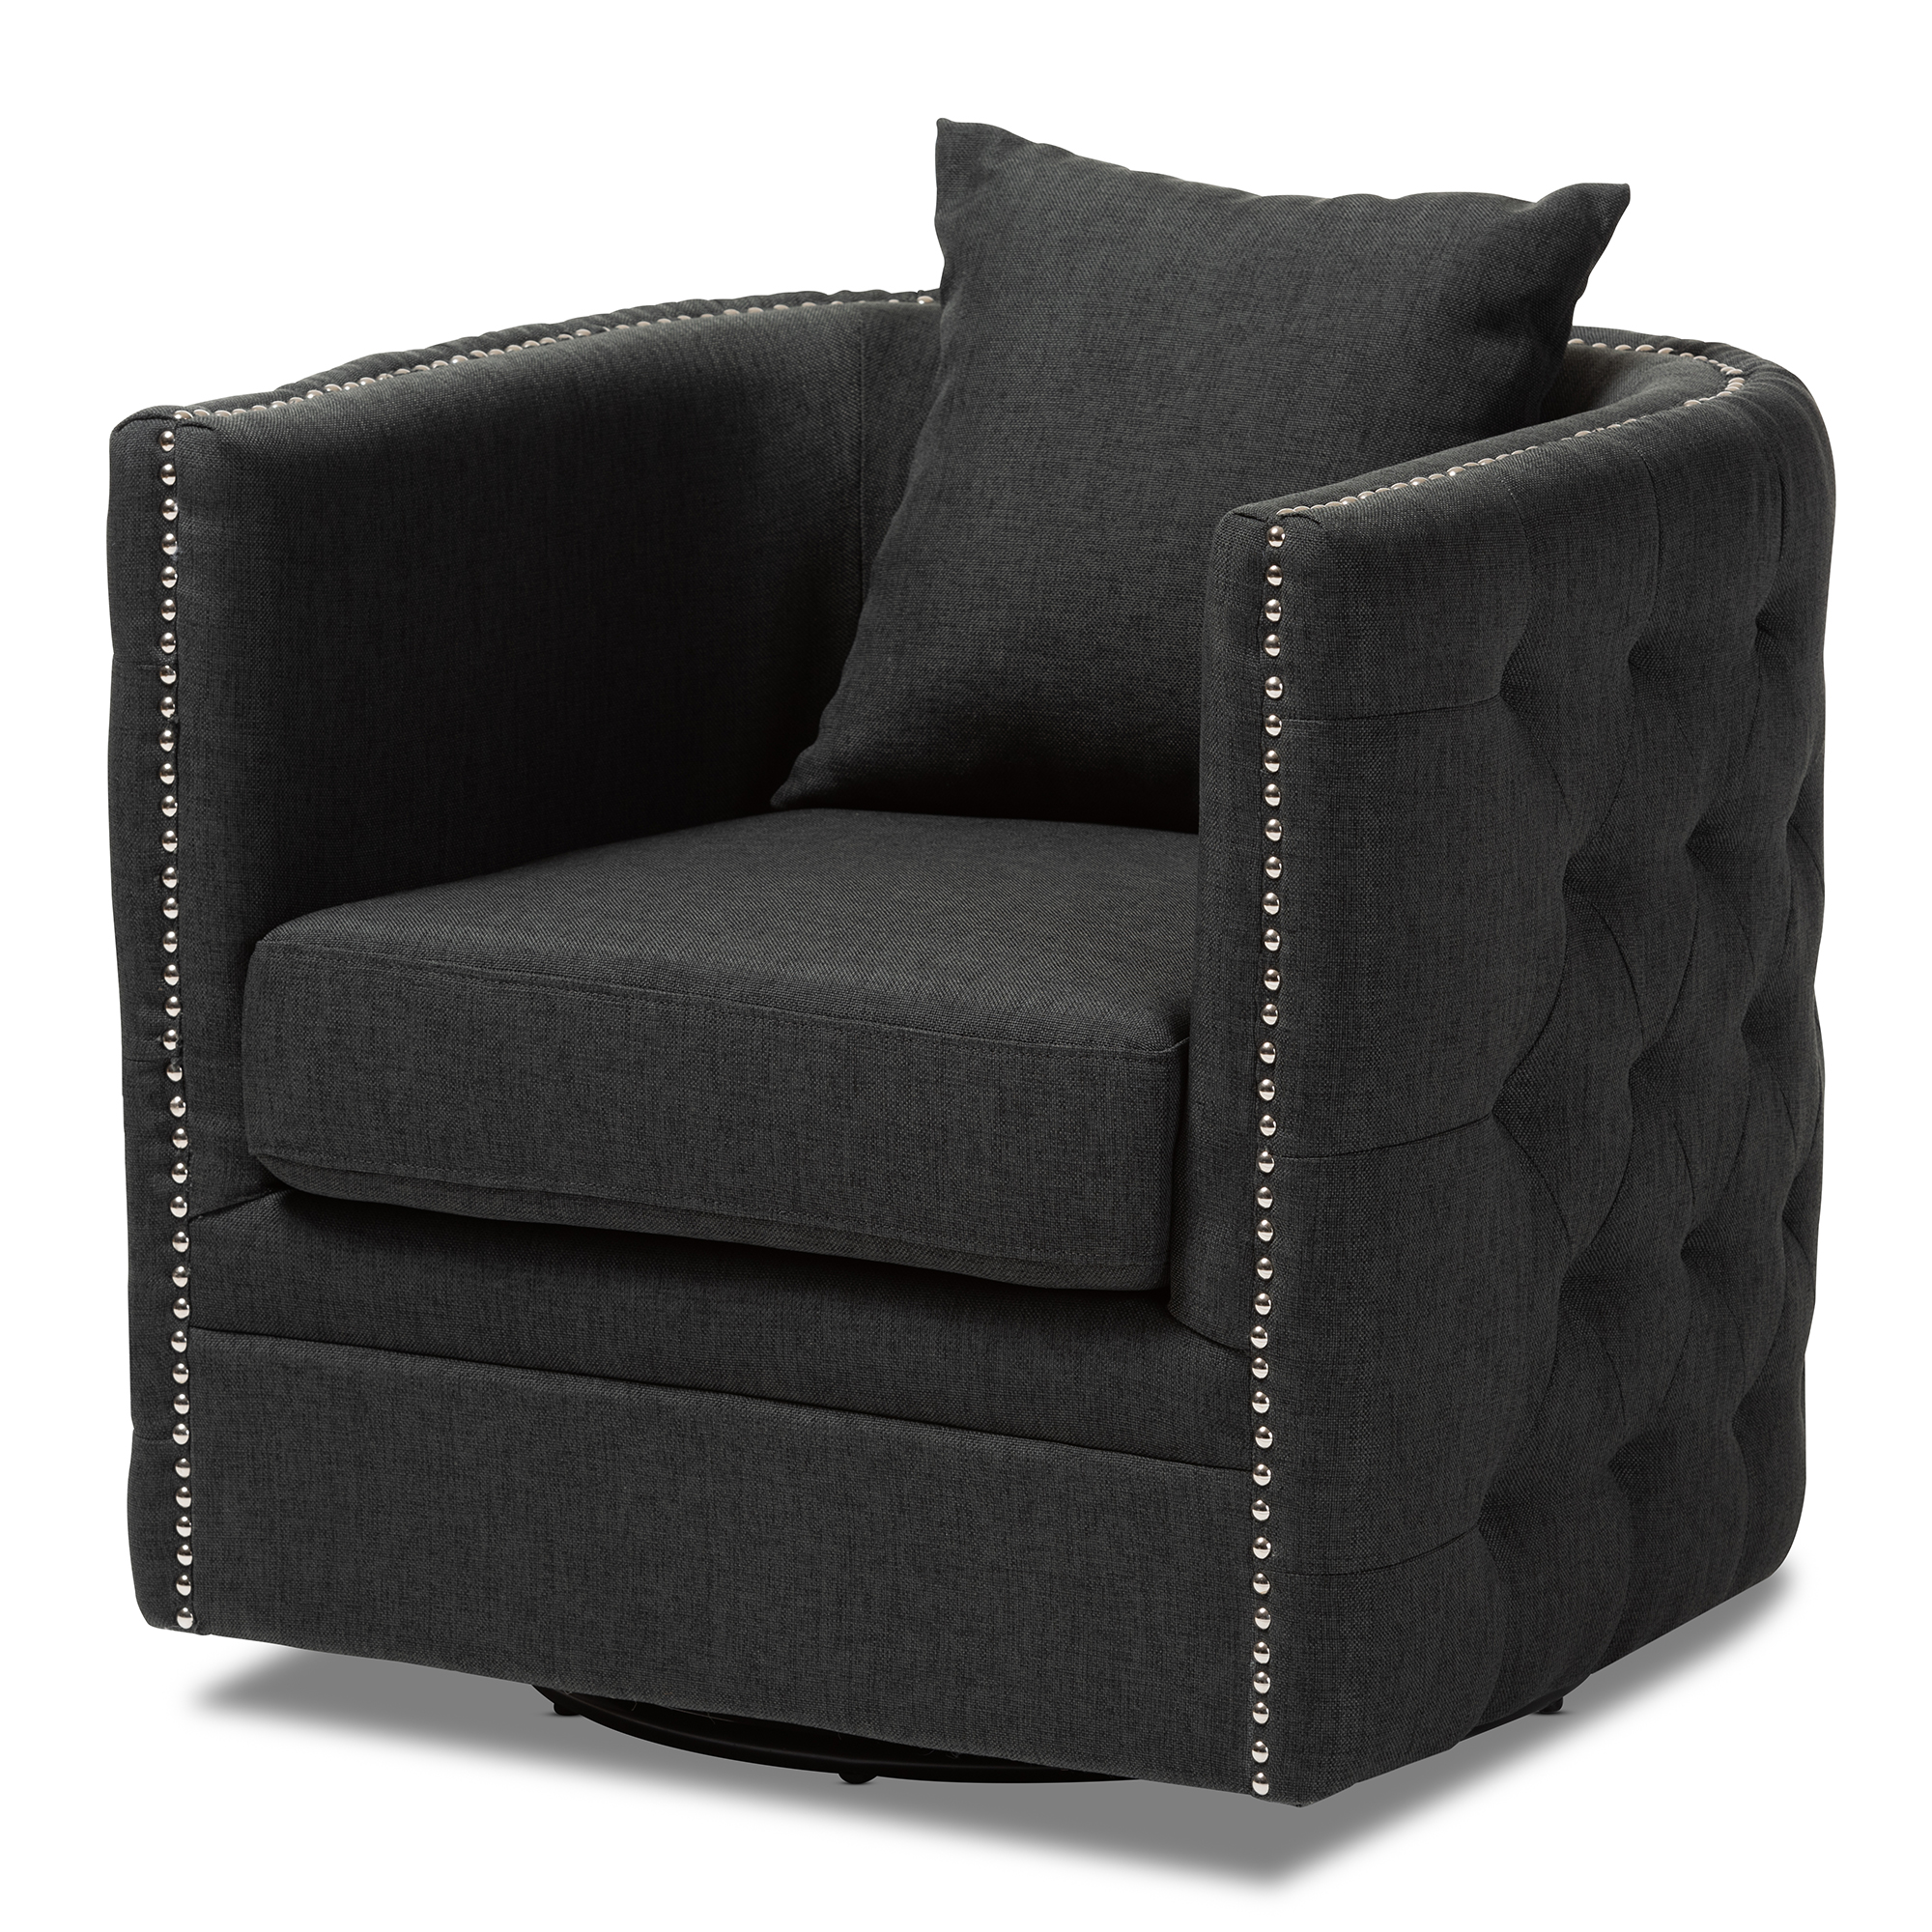 Upholstered Swivel Chairs Baxton Studio Micah Modern And Contemporary Grey Fabric Upholstered Tufted Swivel Chair